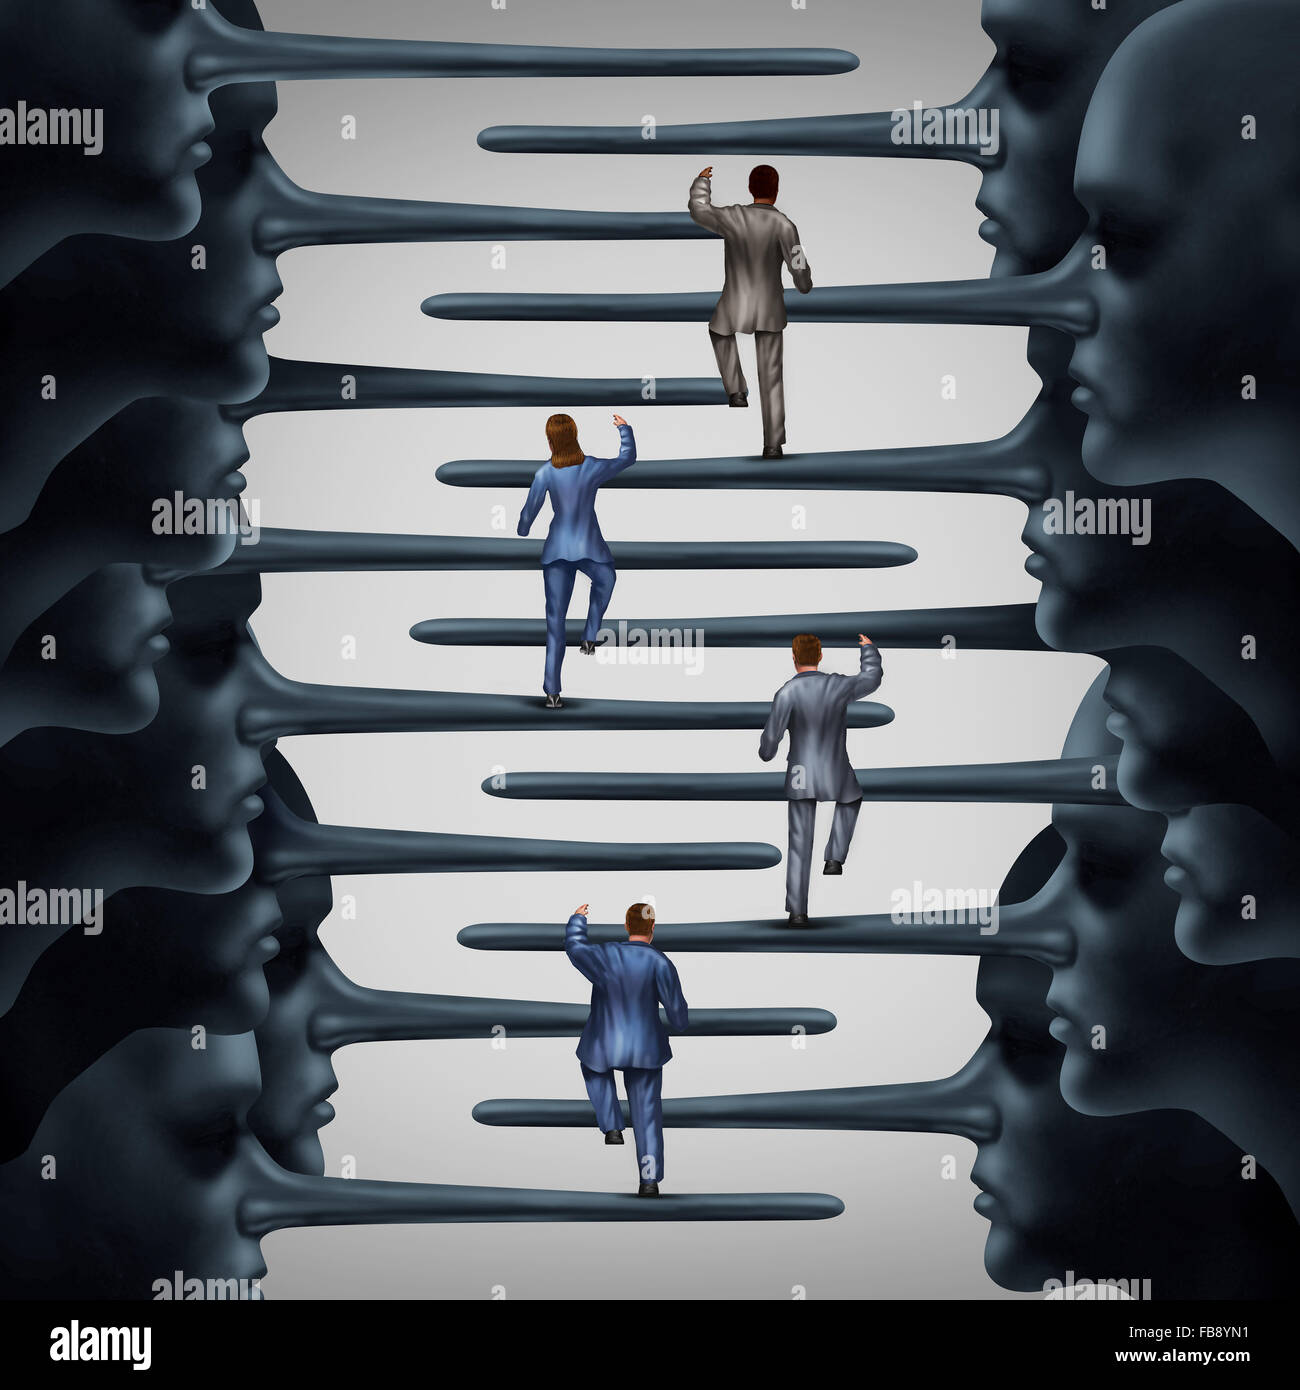 Corrupt system concept and dishonest organization idea as a group of business people climbing a ladder shaped with - Stock Image